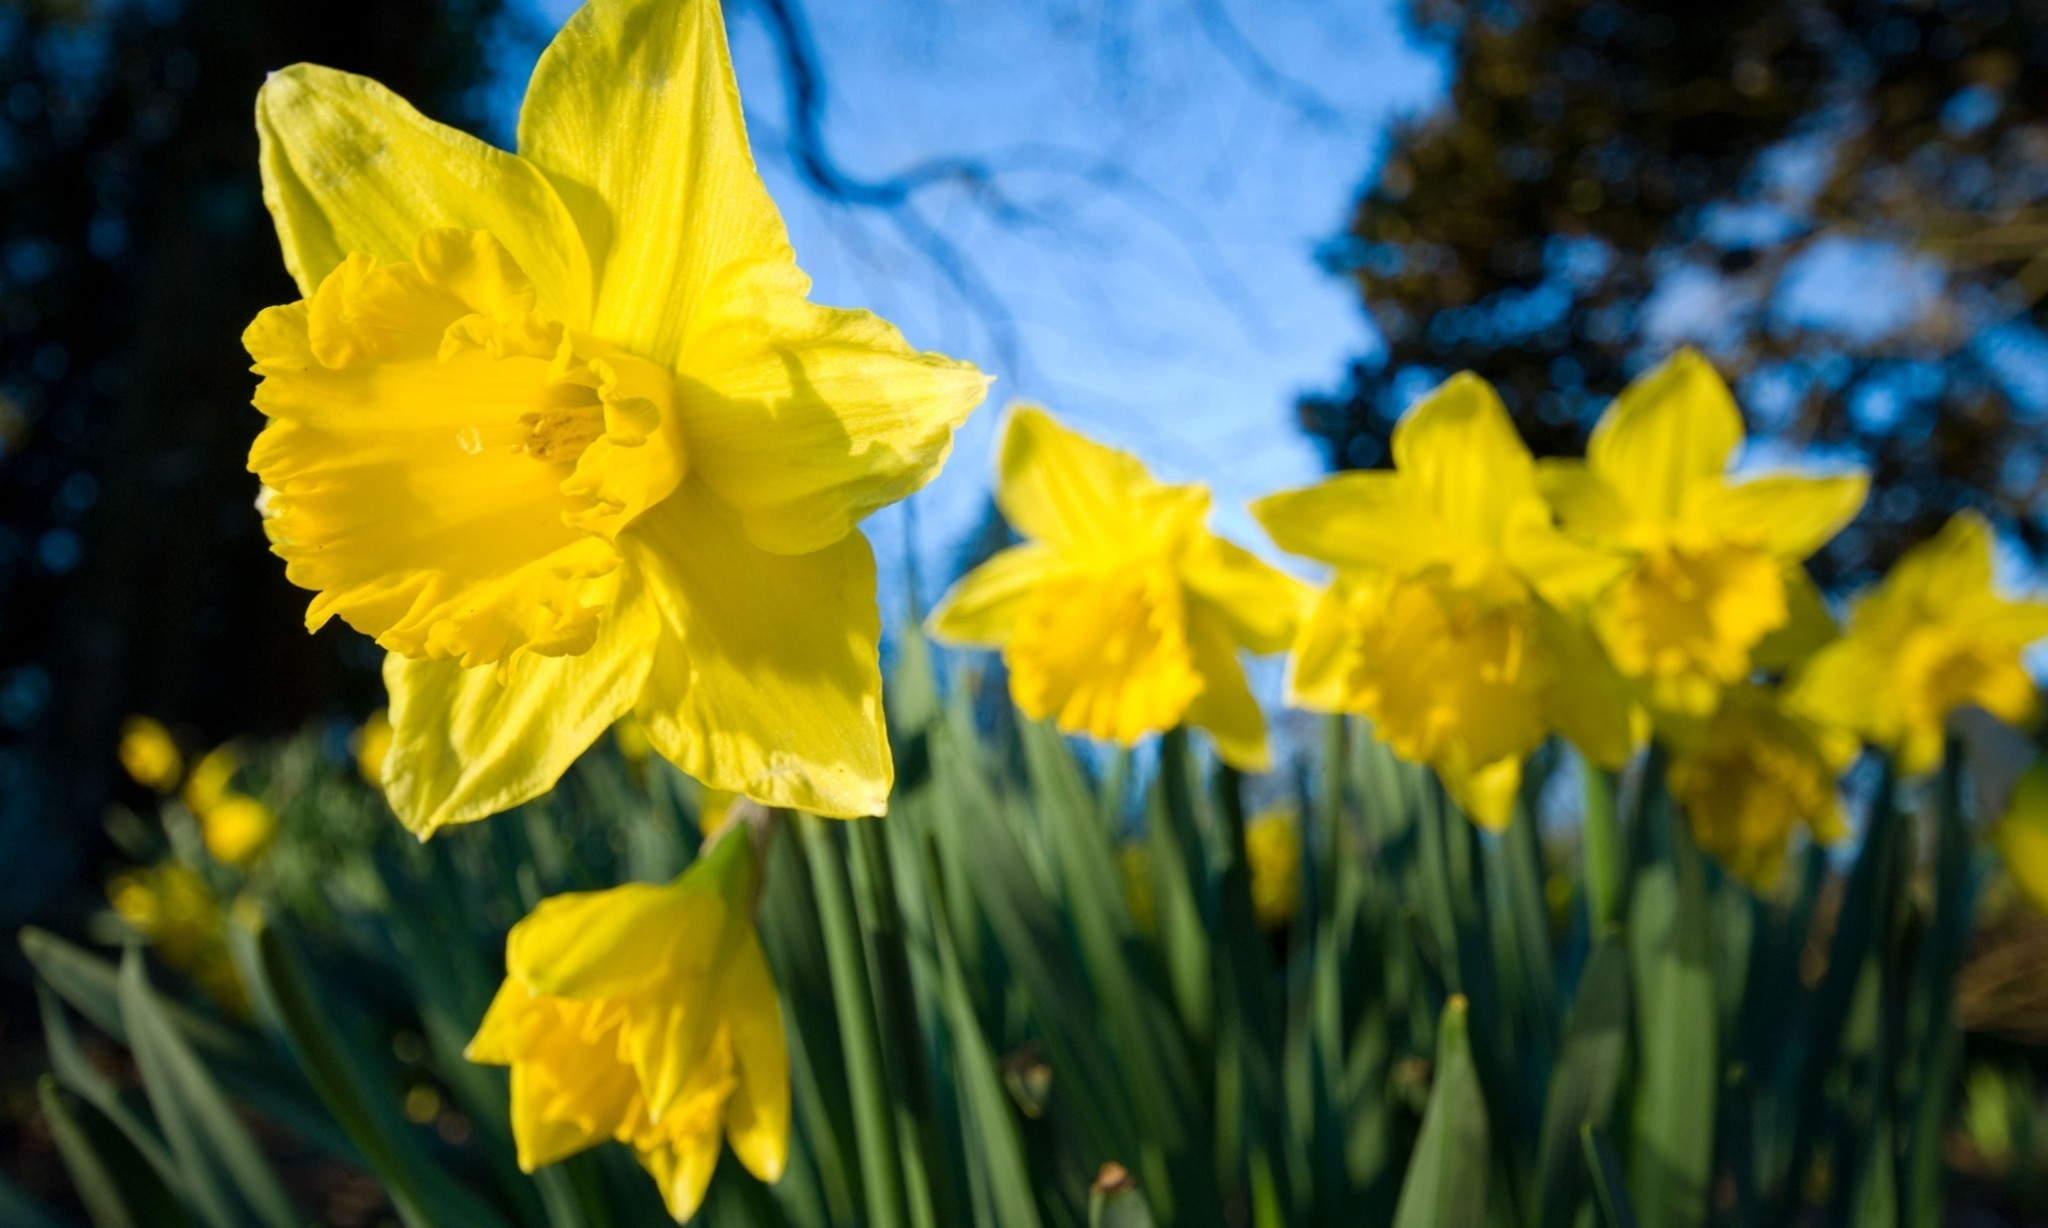 Keep daffodils away from food, supermarkets told